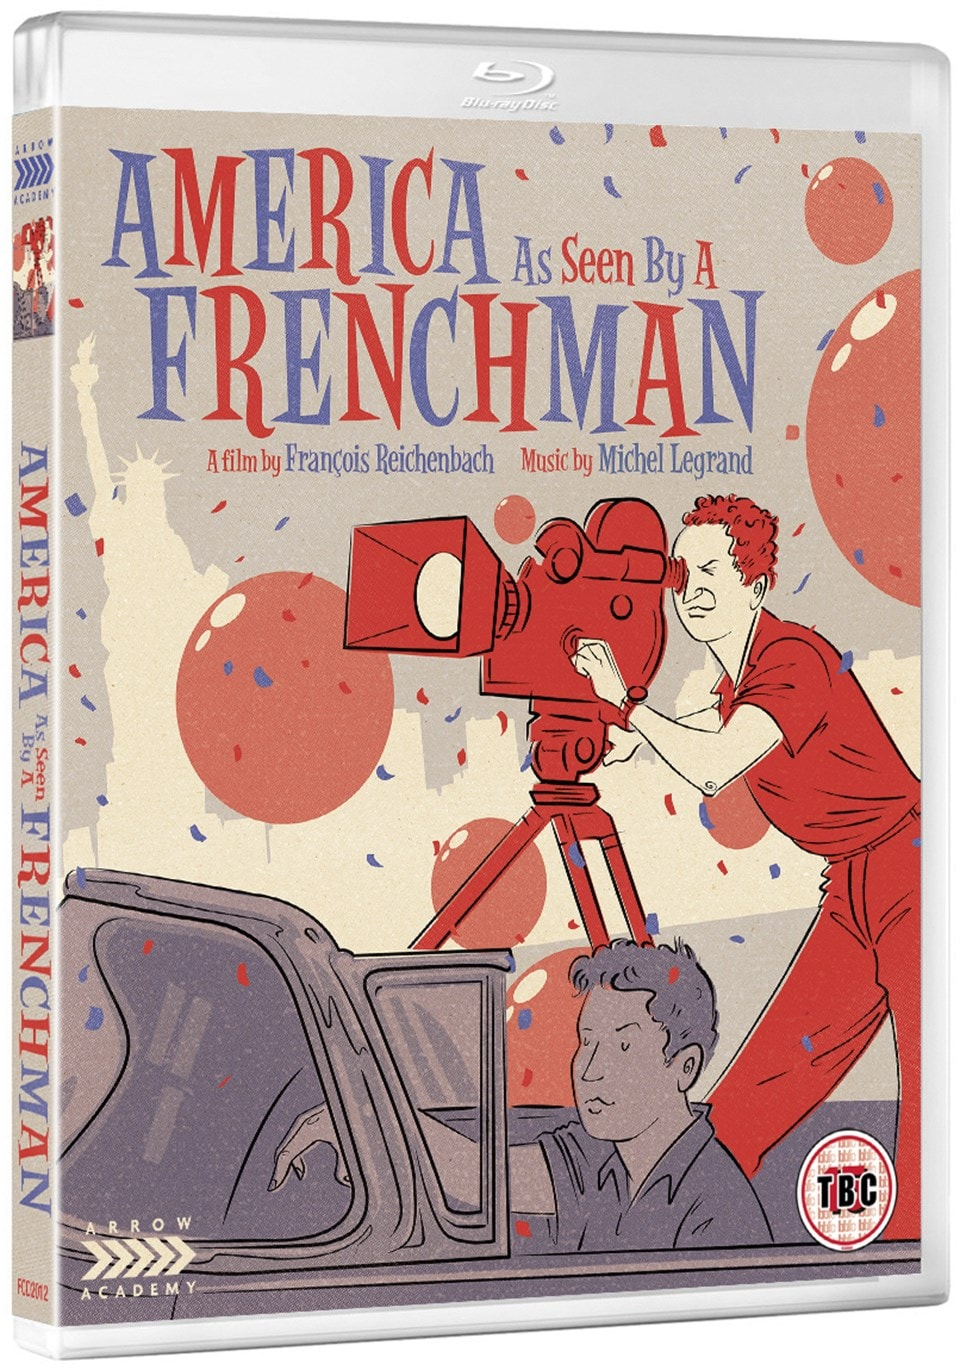 America As Seen By a Frenchman - 2